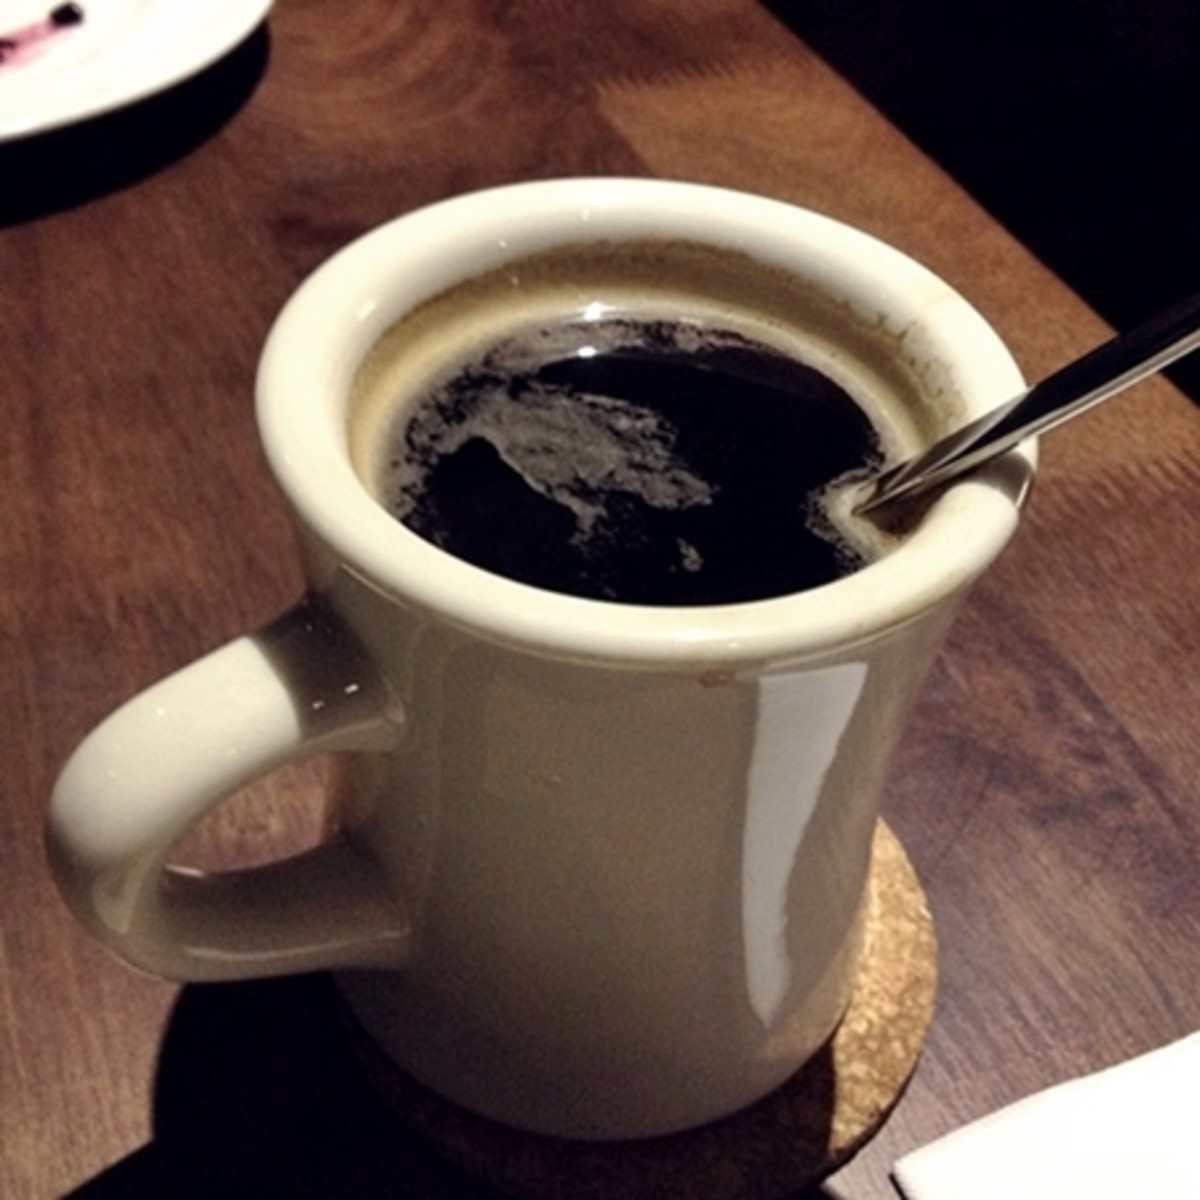 Typical American coffee